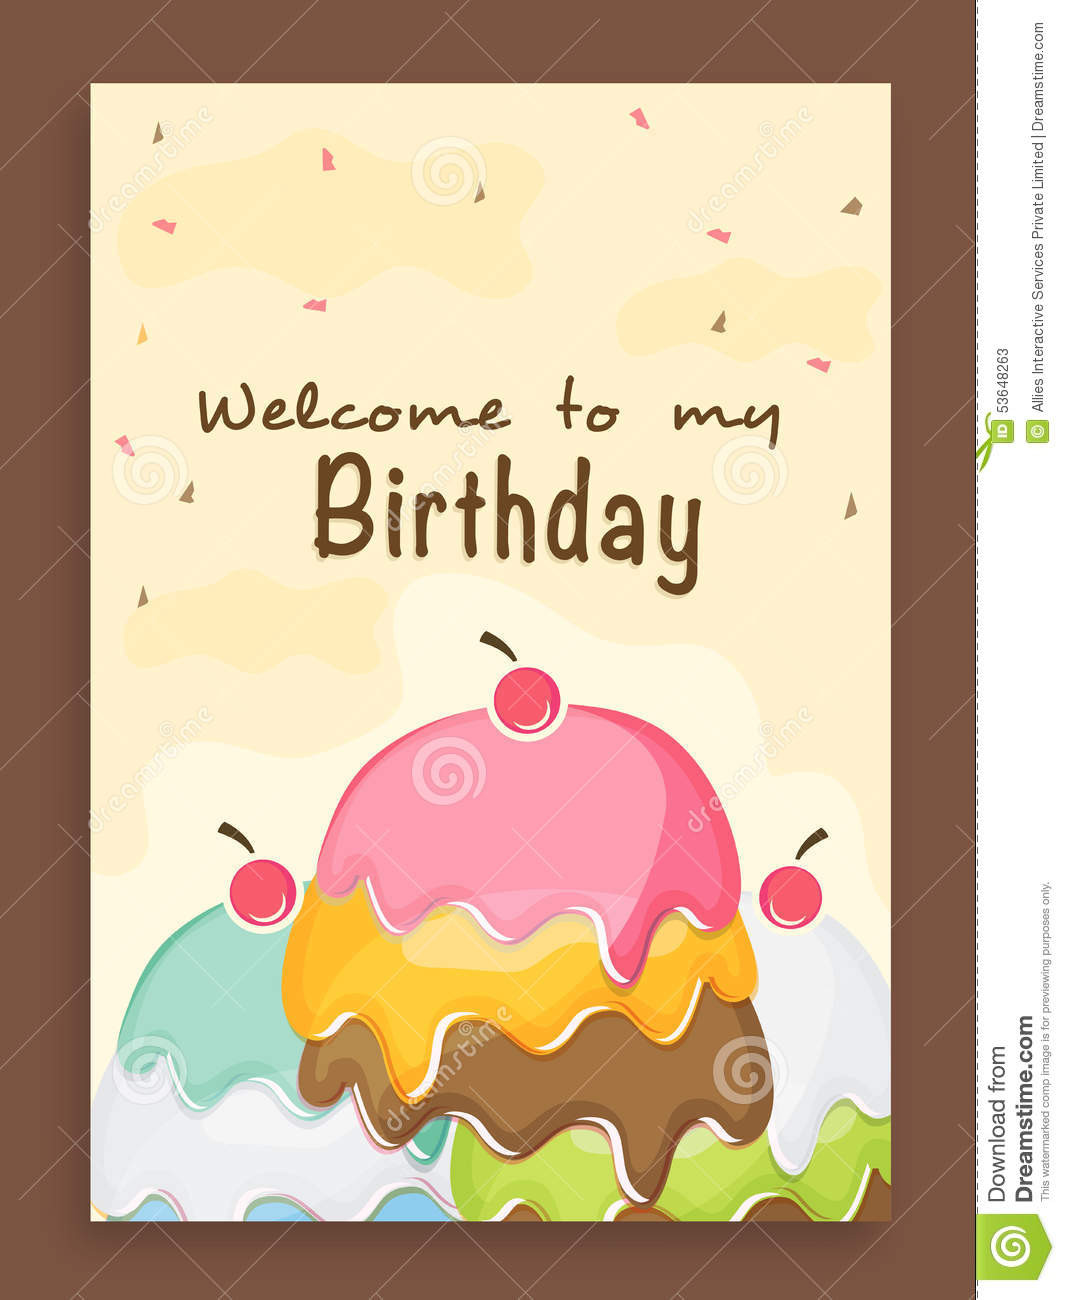 Best ideas about Design Birthday Invitations . Save or Pin Invitation Card Design For Birthday Party Stock Image Now.